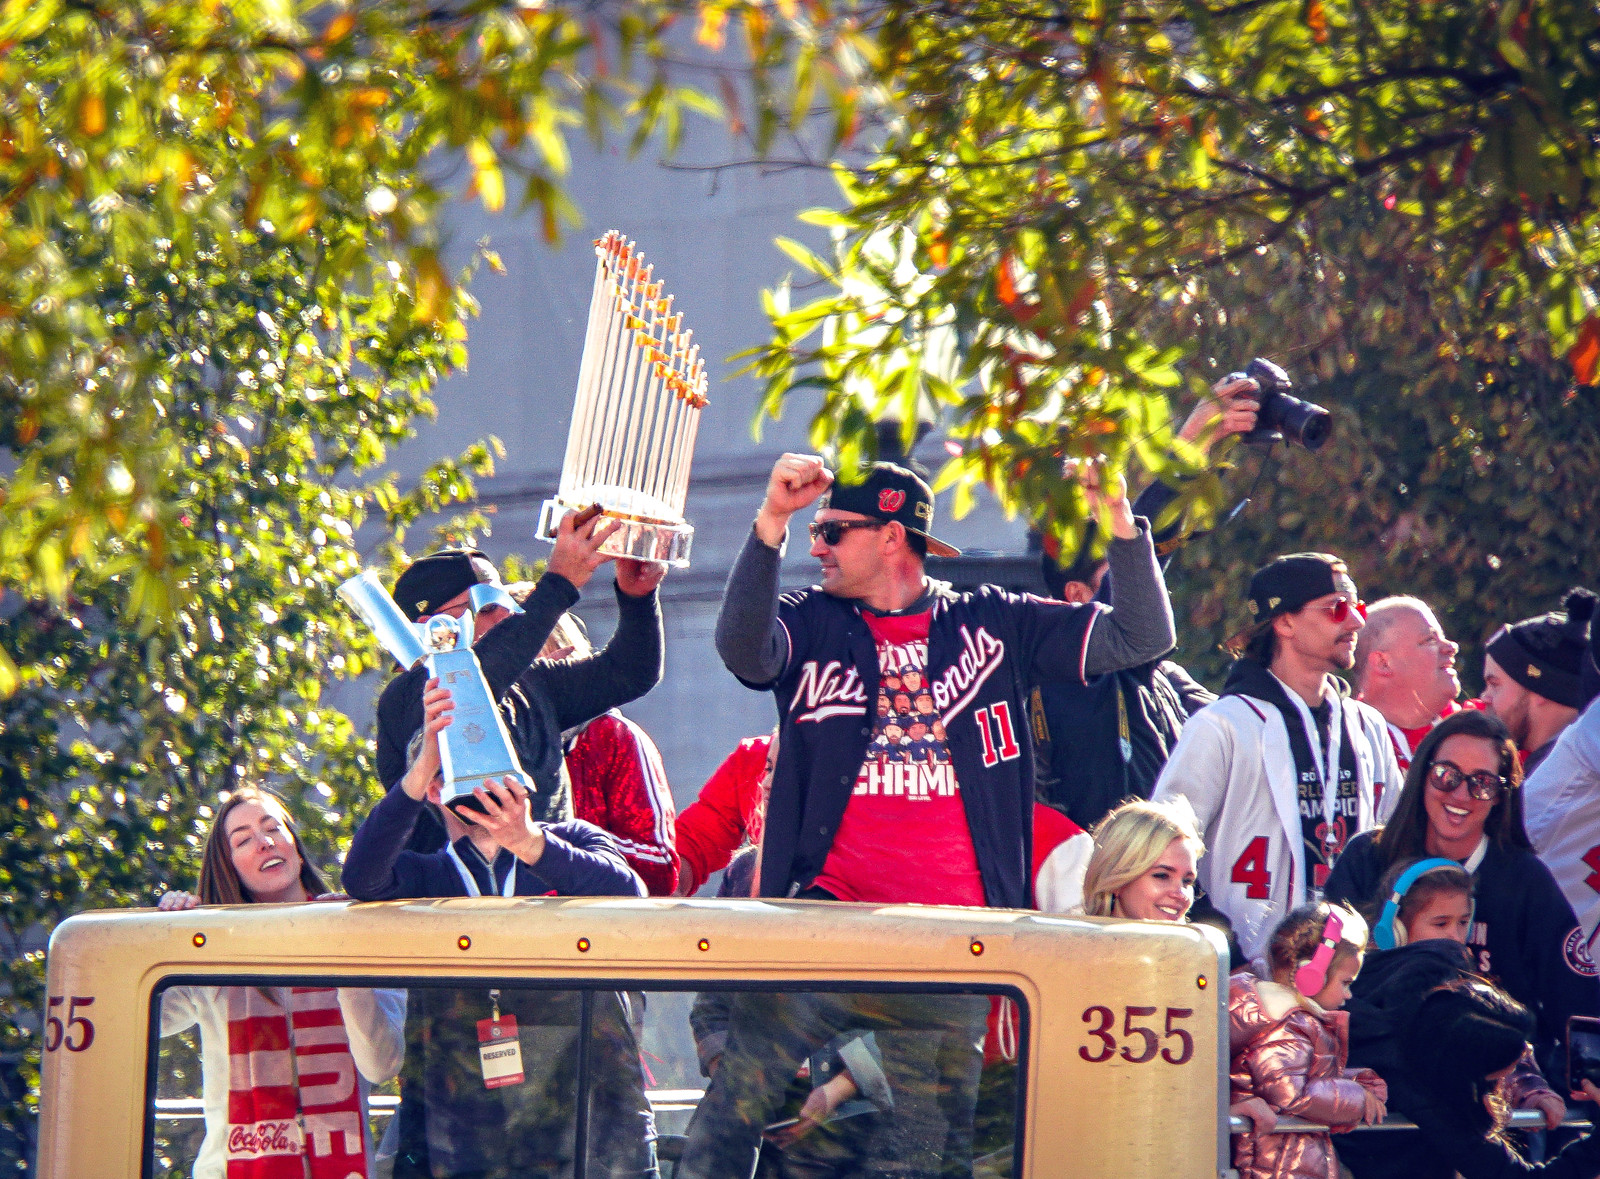 2019.11.02 Washington Nationals Victory Parade, Washington, DC USA 306 61037